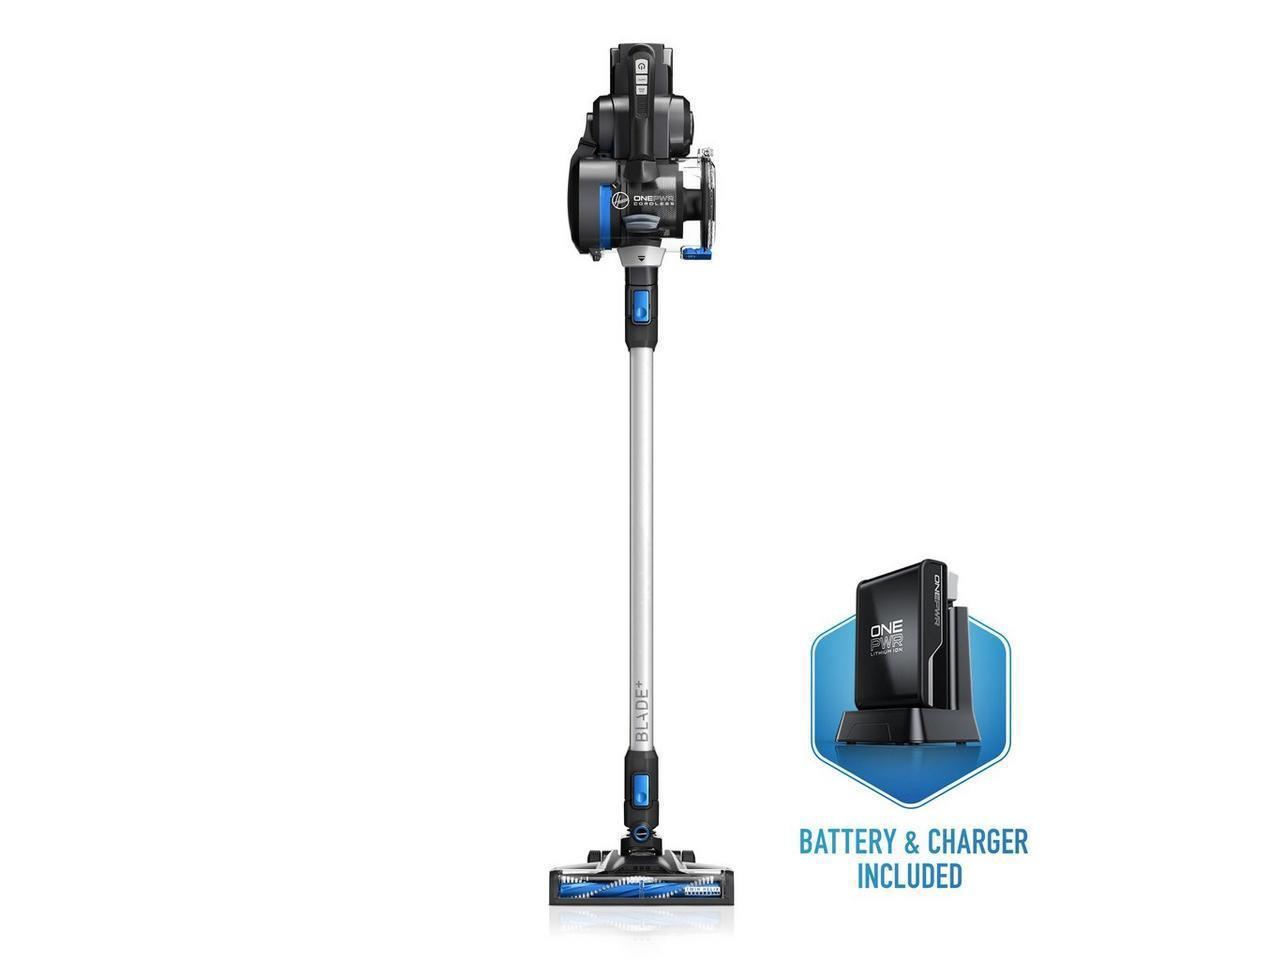 Hoover ONEPWR Blade+ Cordless Stick Vacuum Cleaner - Free ONEPWR Cordless Hard Surface Sweeper w/ Purchase